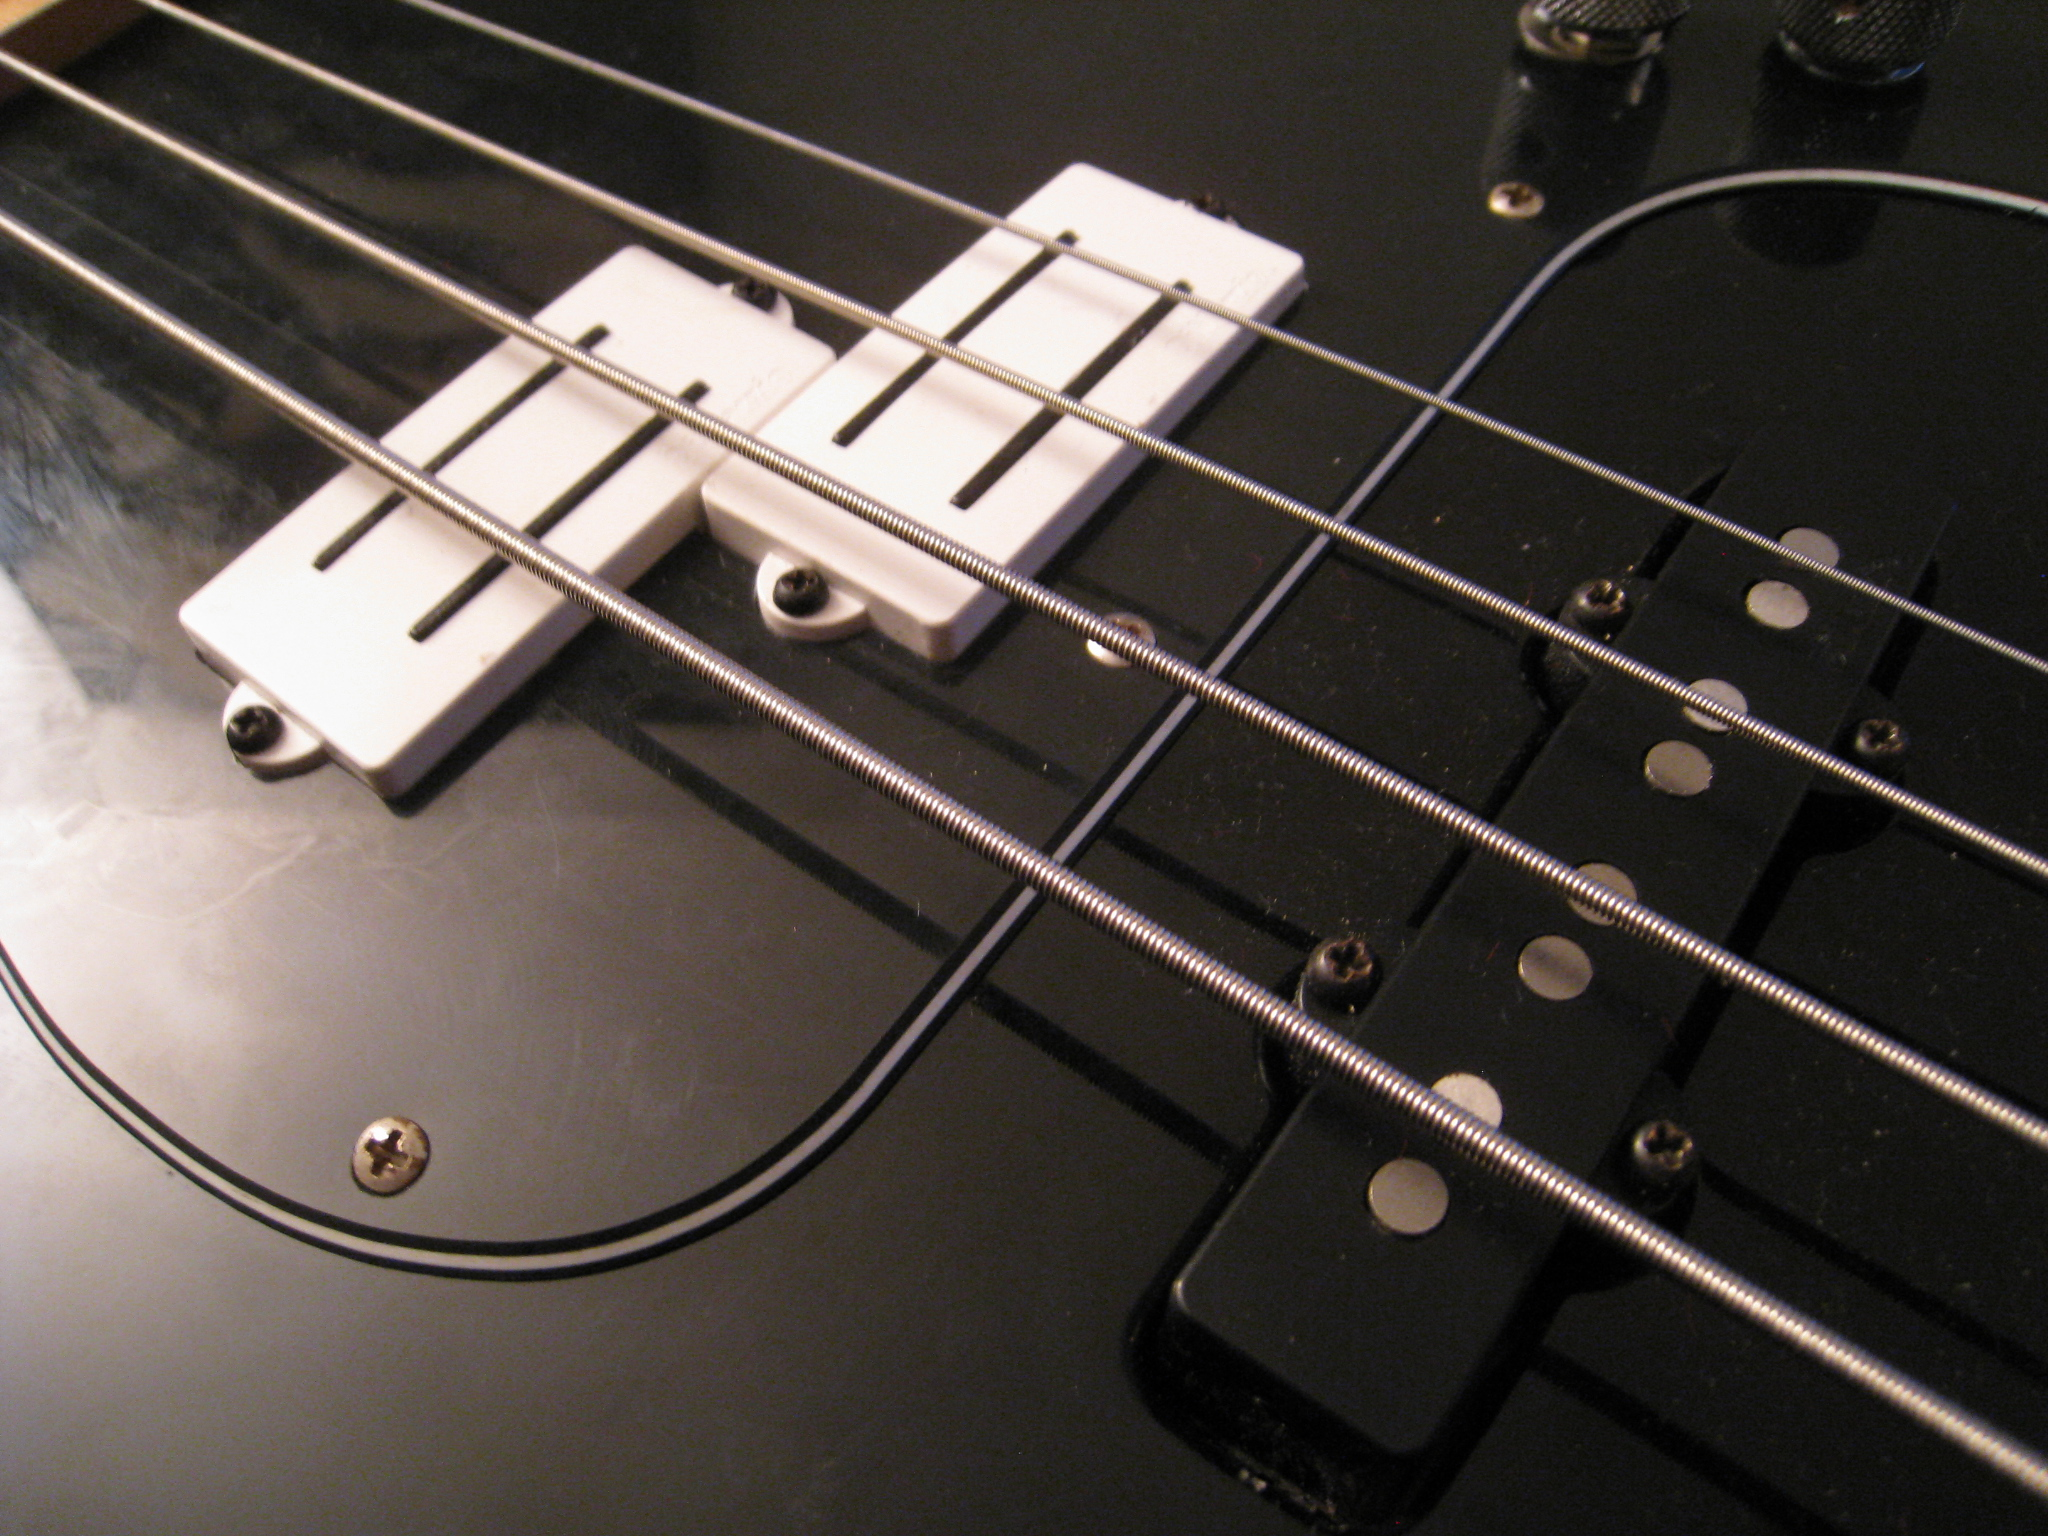 Comfortable Two Humbuckers 5 Way Switch Tall Hh 5 Way Switch Wiring Rectangular Gretsch Wiring Harness Solar Panel Diagram Youthful Solar Panel Wiring Guide GraySolar Panel Diagrams DiMarzio DP148 Ultra Jazz Bridge Image (#328844)   Audiofanzine